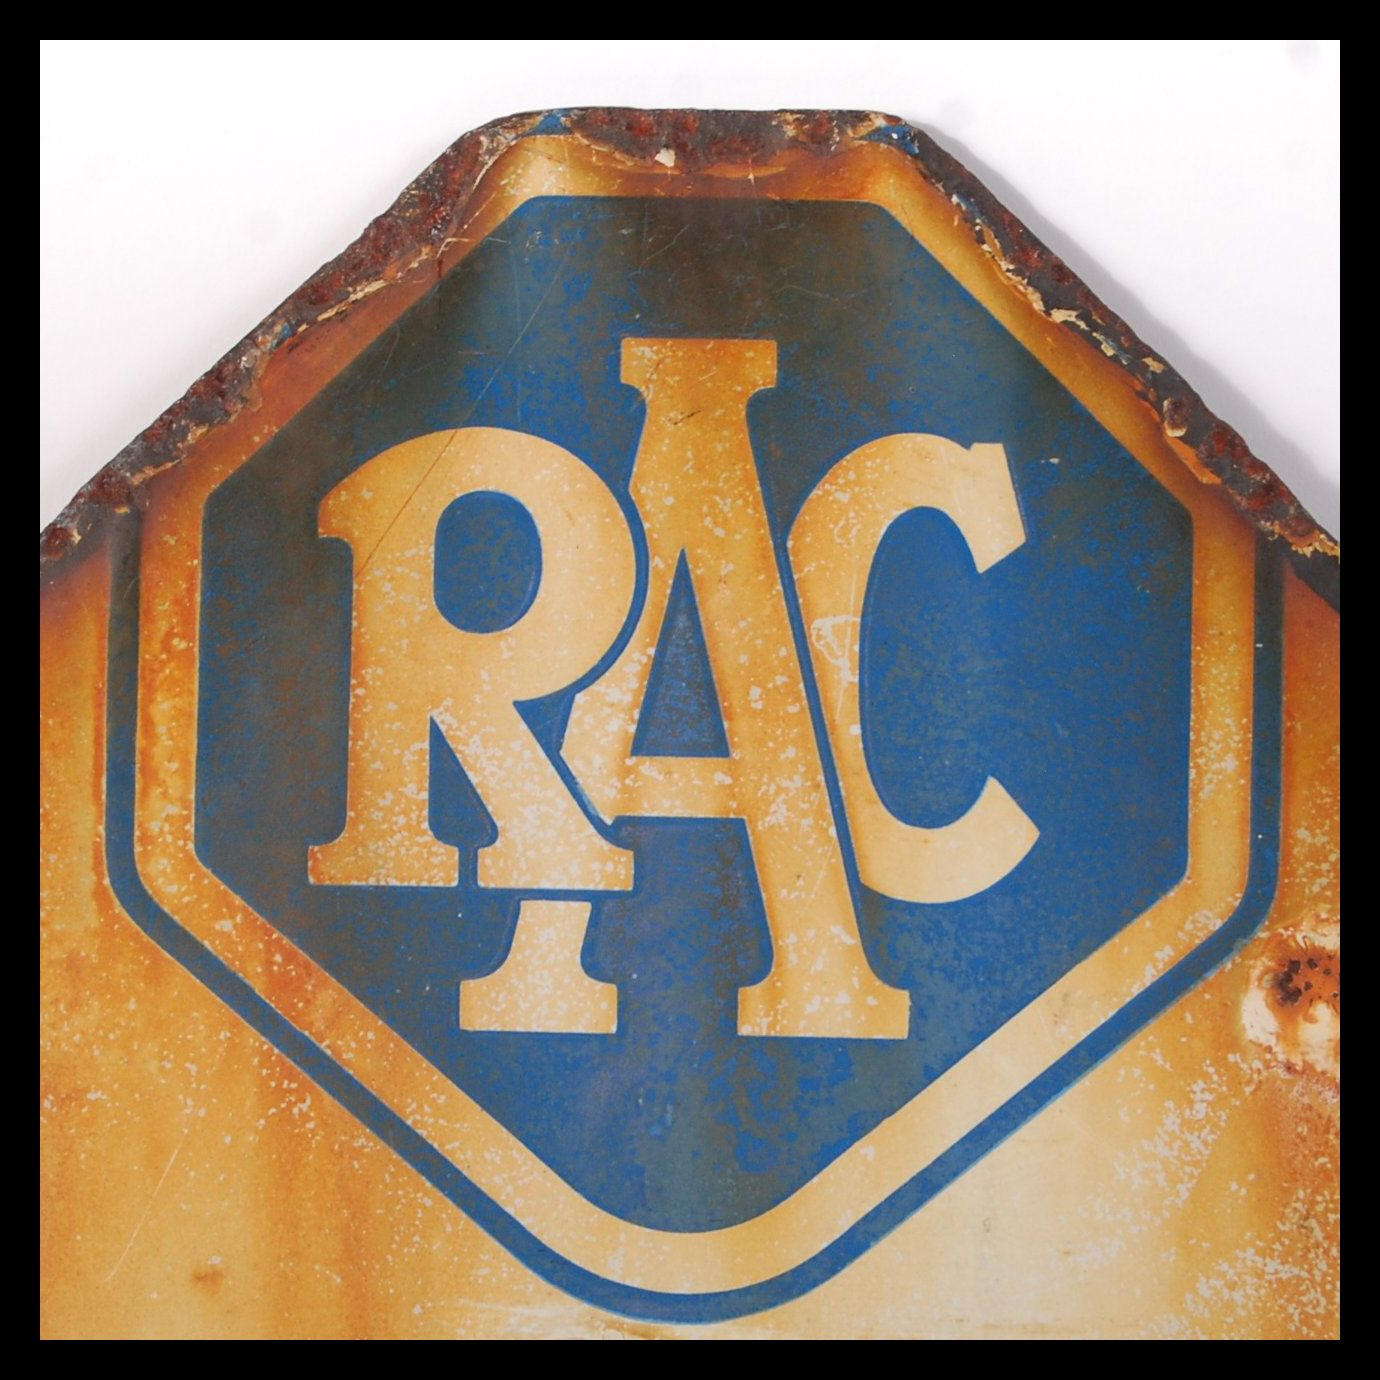 RARE ORIGINAL 1960'S RAC ENAMEL ROAD SIGN FOR BURNHAM ON SEA - Image 3 of 4